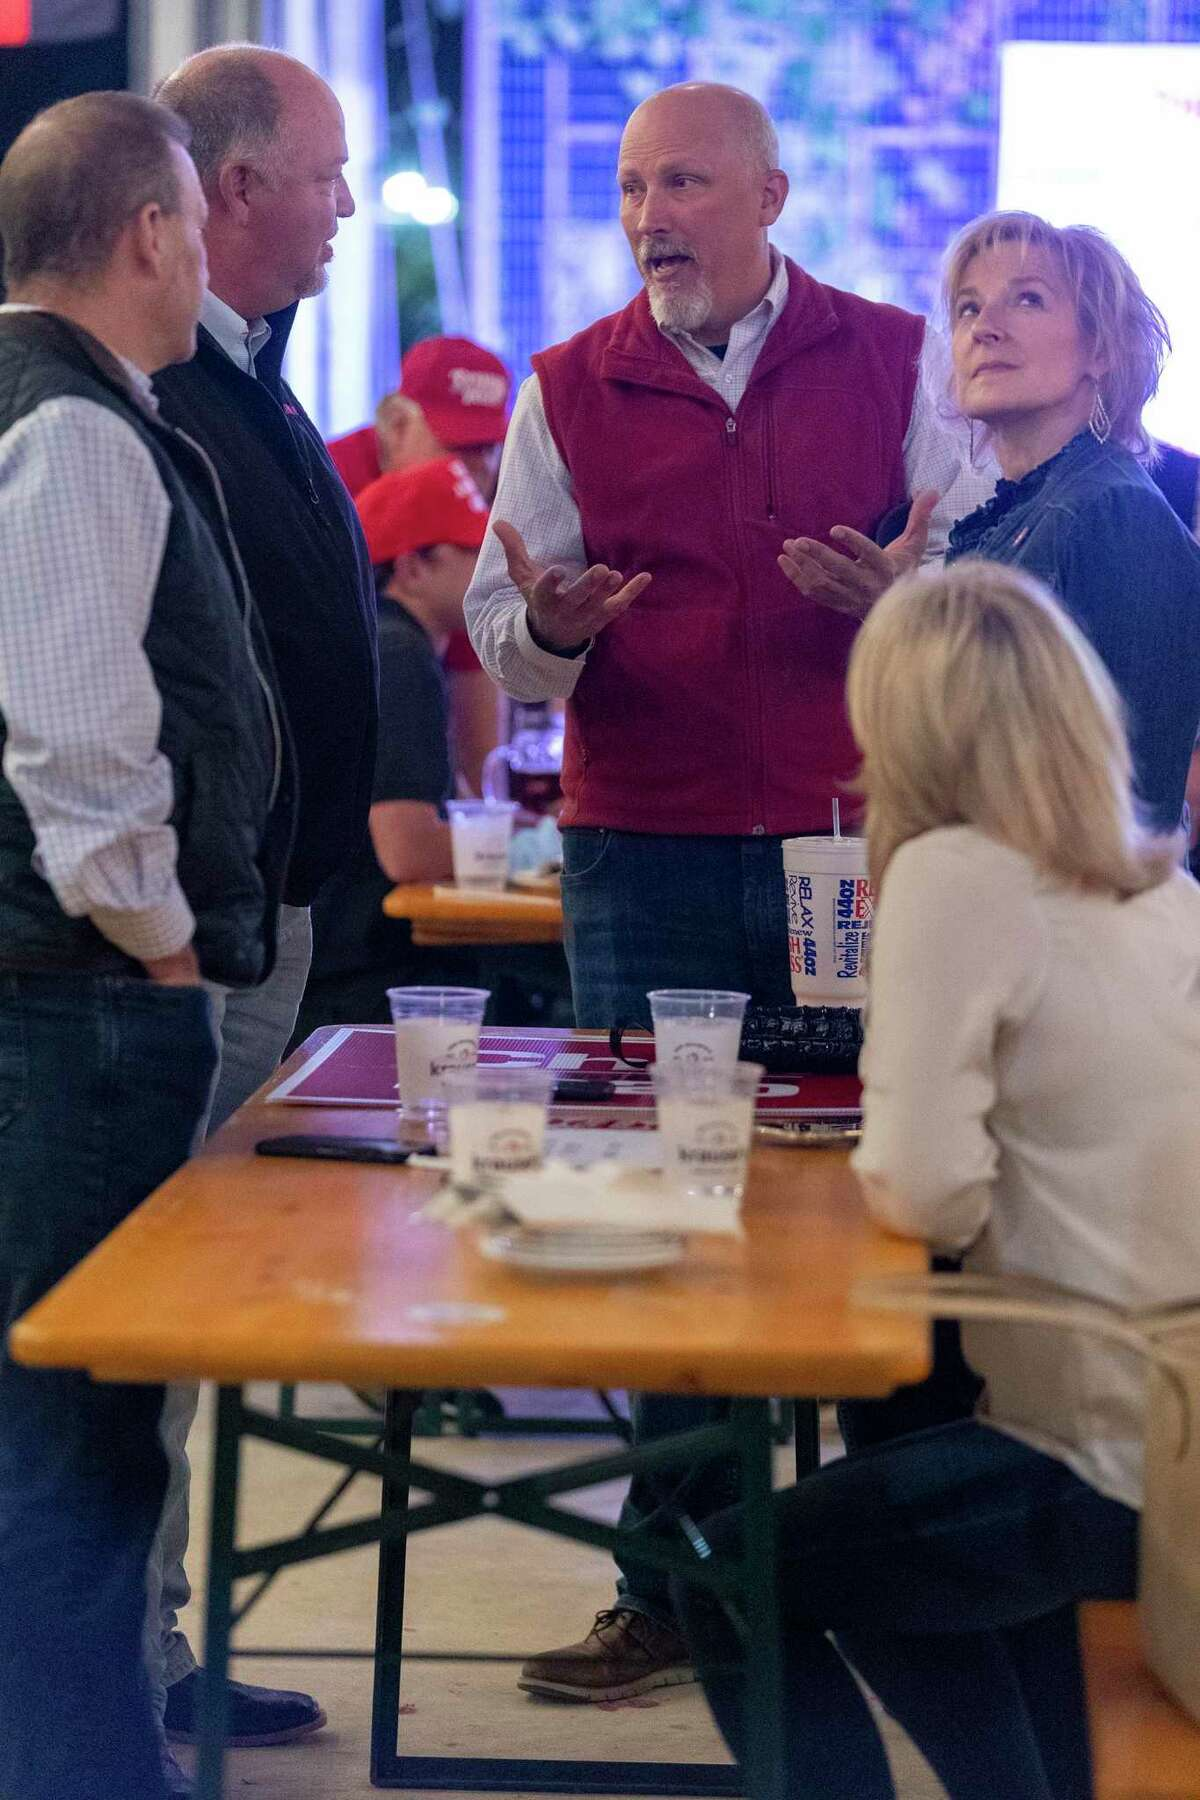 U.S. Rep. Chip Roy, R-Hays County, speaks with Mark Stewart, from Tomball, and Barbara Feigin, from The Woodlands, during an election watch party at Krause?s Cafe in New Braunfels, Tuesday, Nov., 3, 2020. Roy the incumbent is running against form Texas State Senator Wendy Davis. [Stephen Spillman for Statesman]